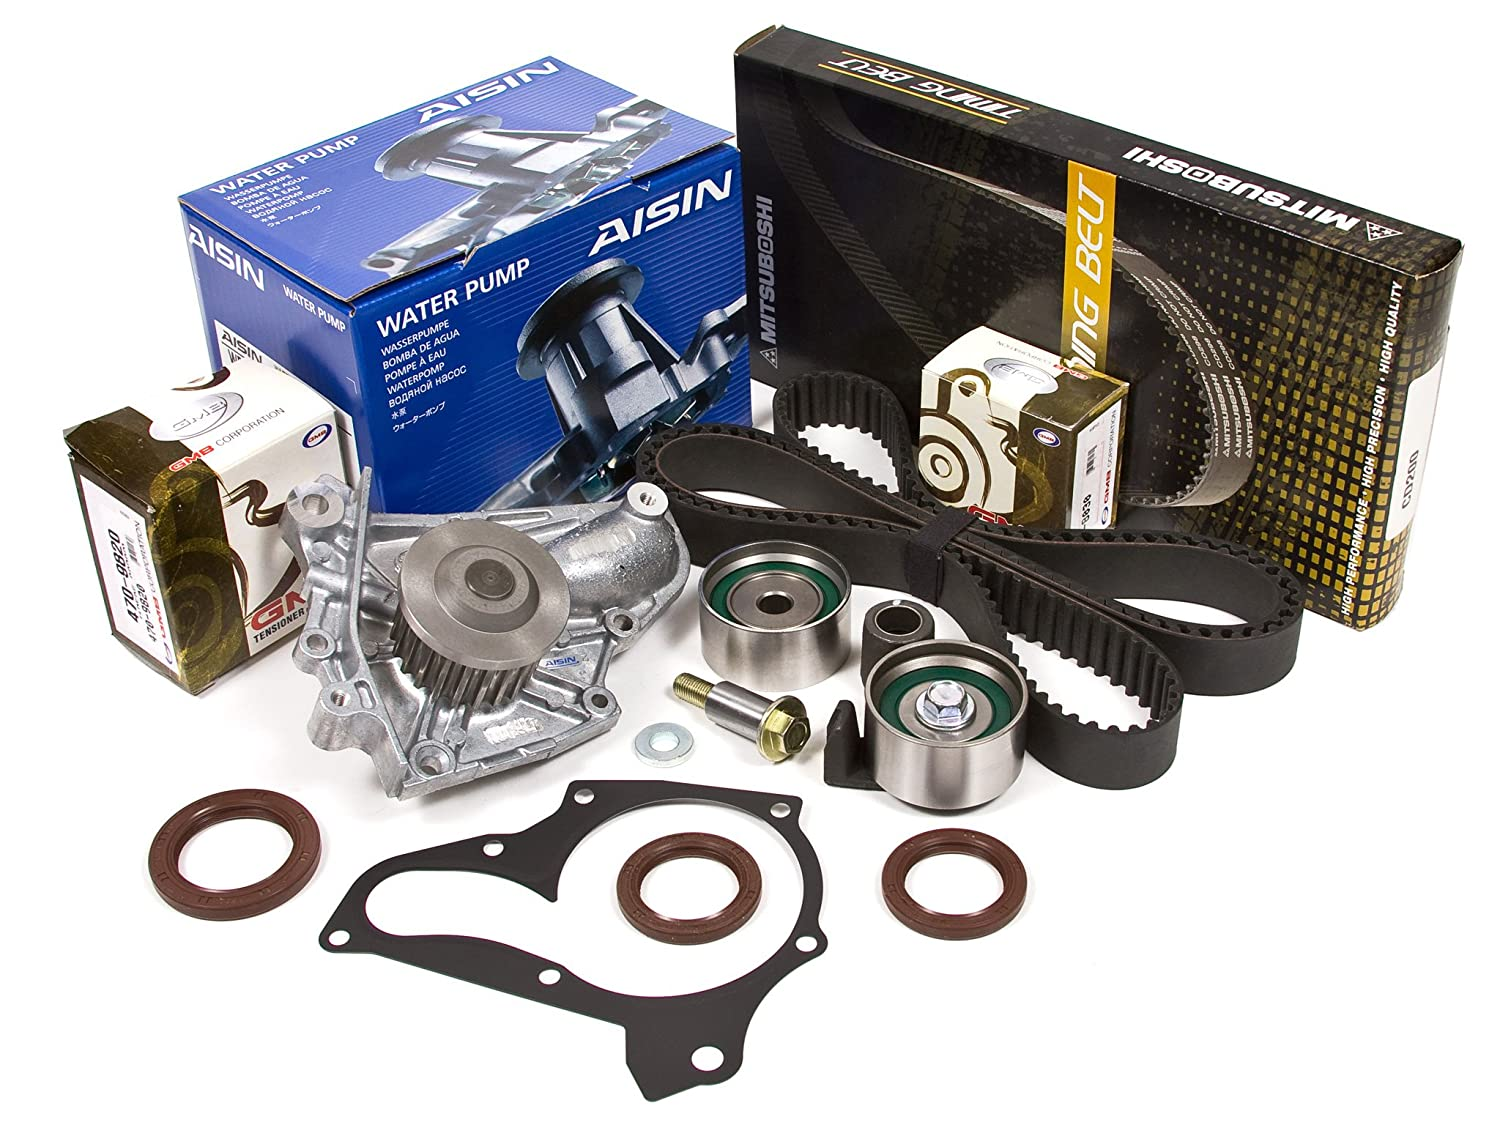 Evergreen tbk125mwpa 91 - 95 - Toyota Celica MR2 Turbo 2.0L DOHC 3SGTE Correa de distribución Kit Aisin Bomba de agua: Amazon.es: Coche y moto